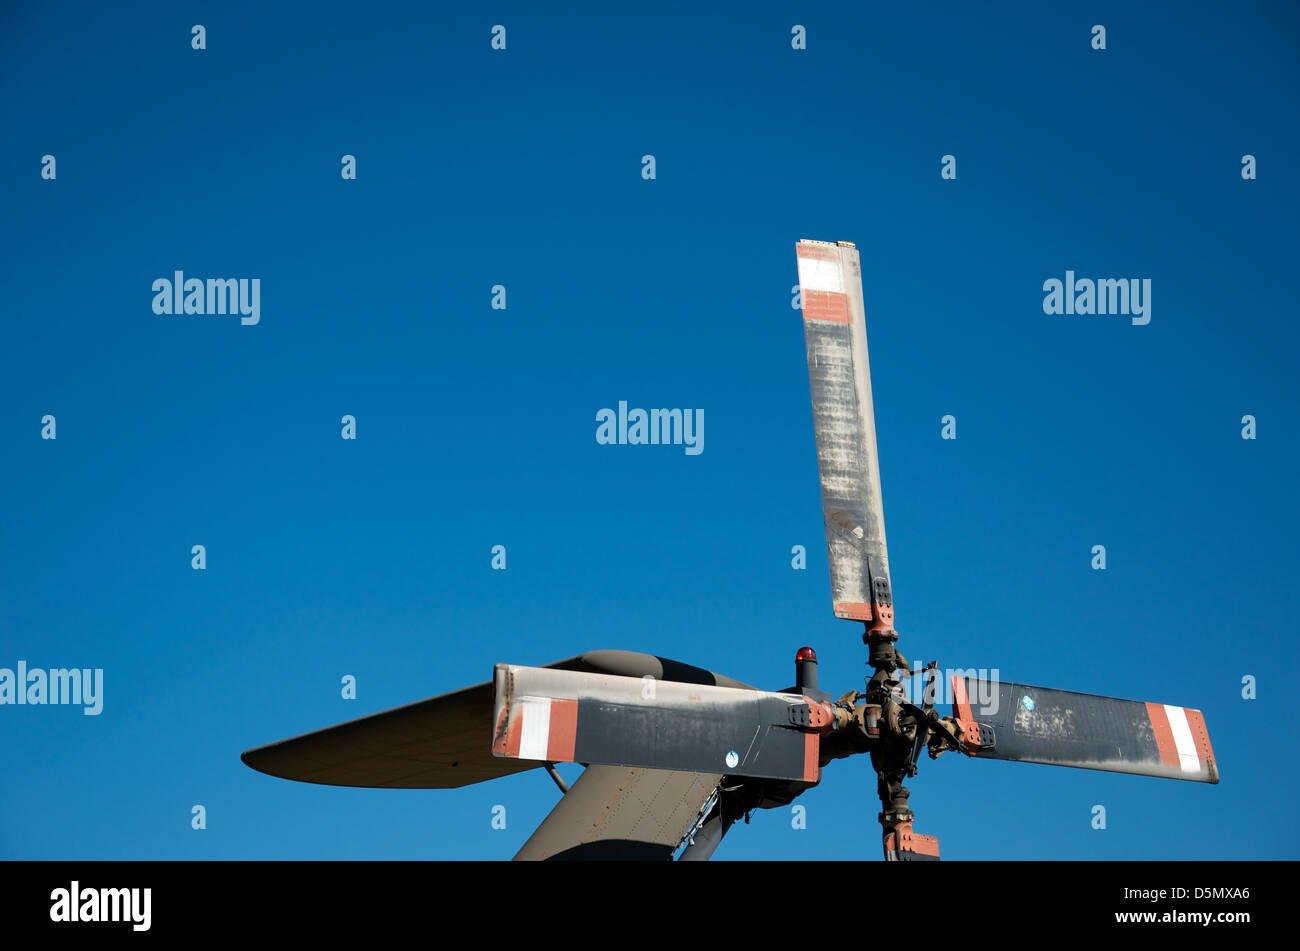 Tail rotor on a military helicopter against blue skies. - Stock Image